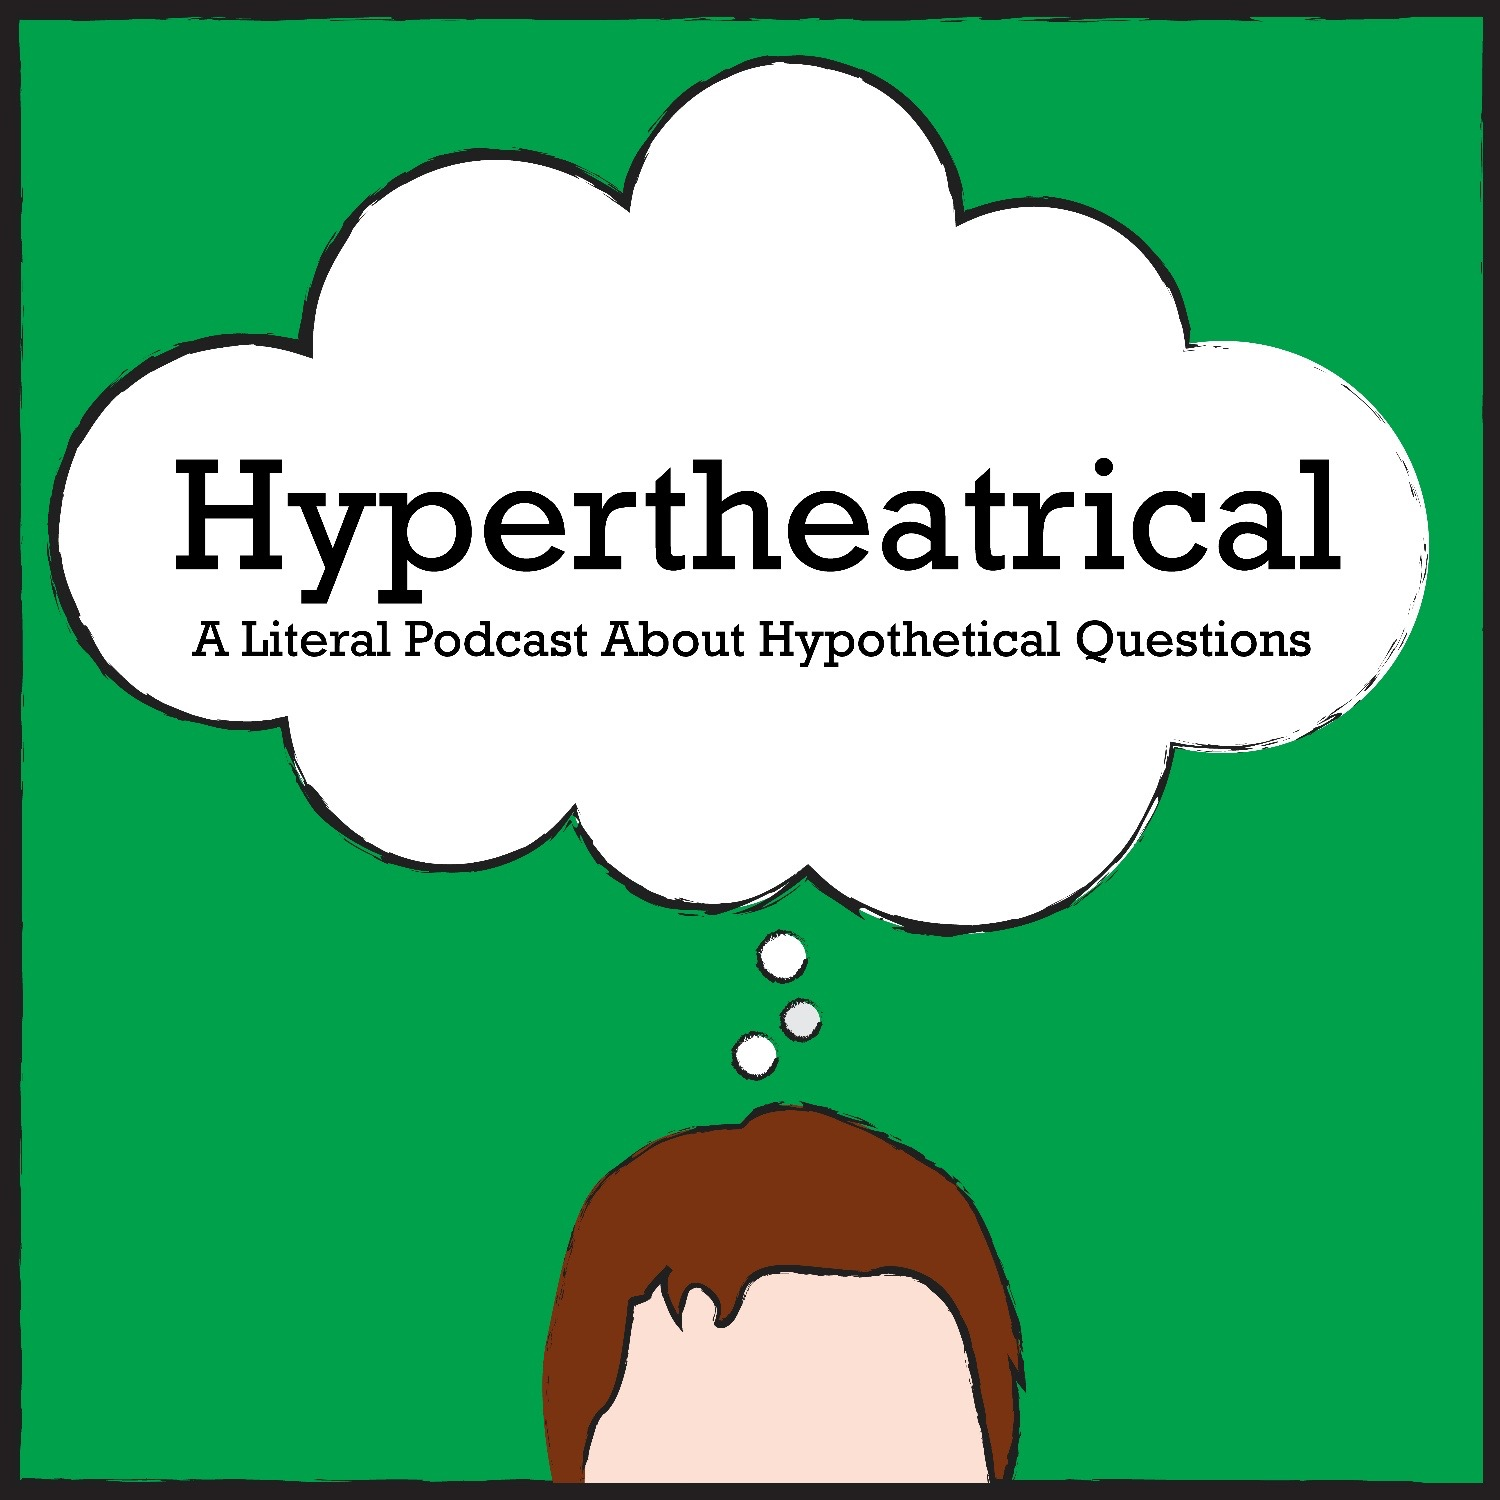 Hypertheatrical